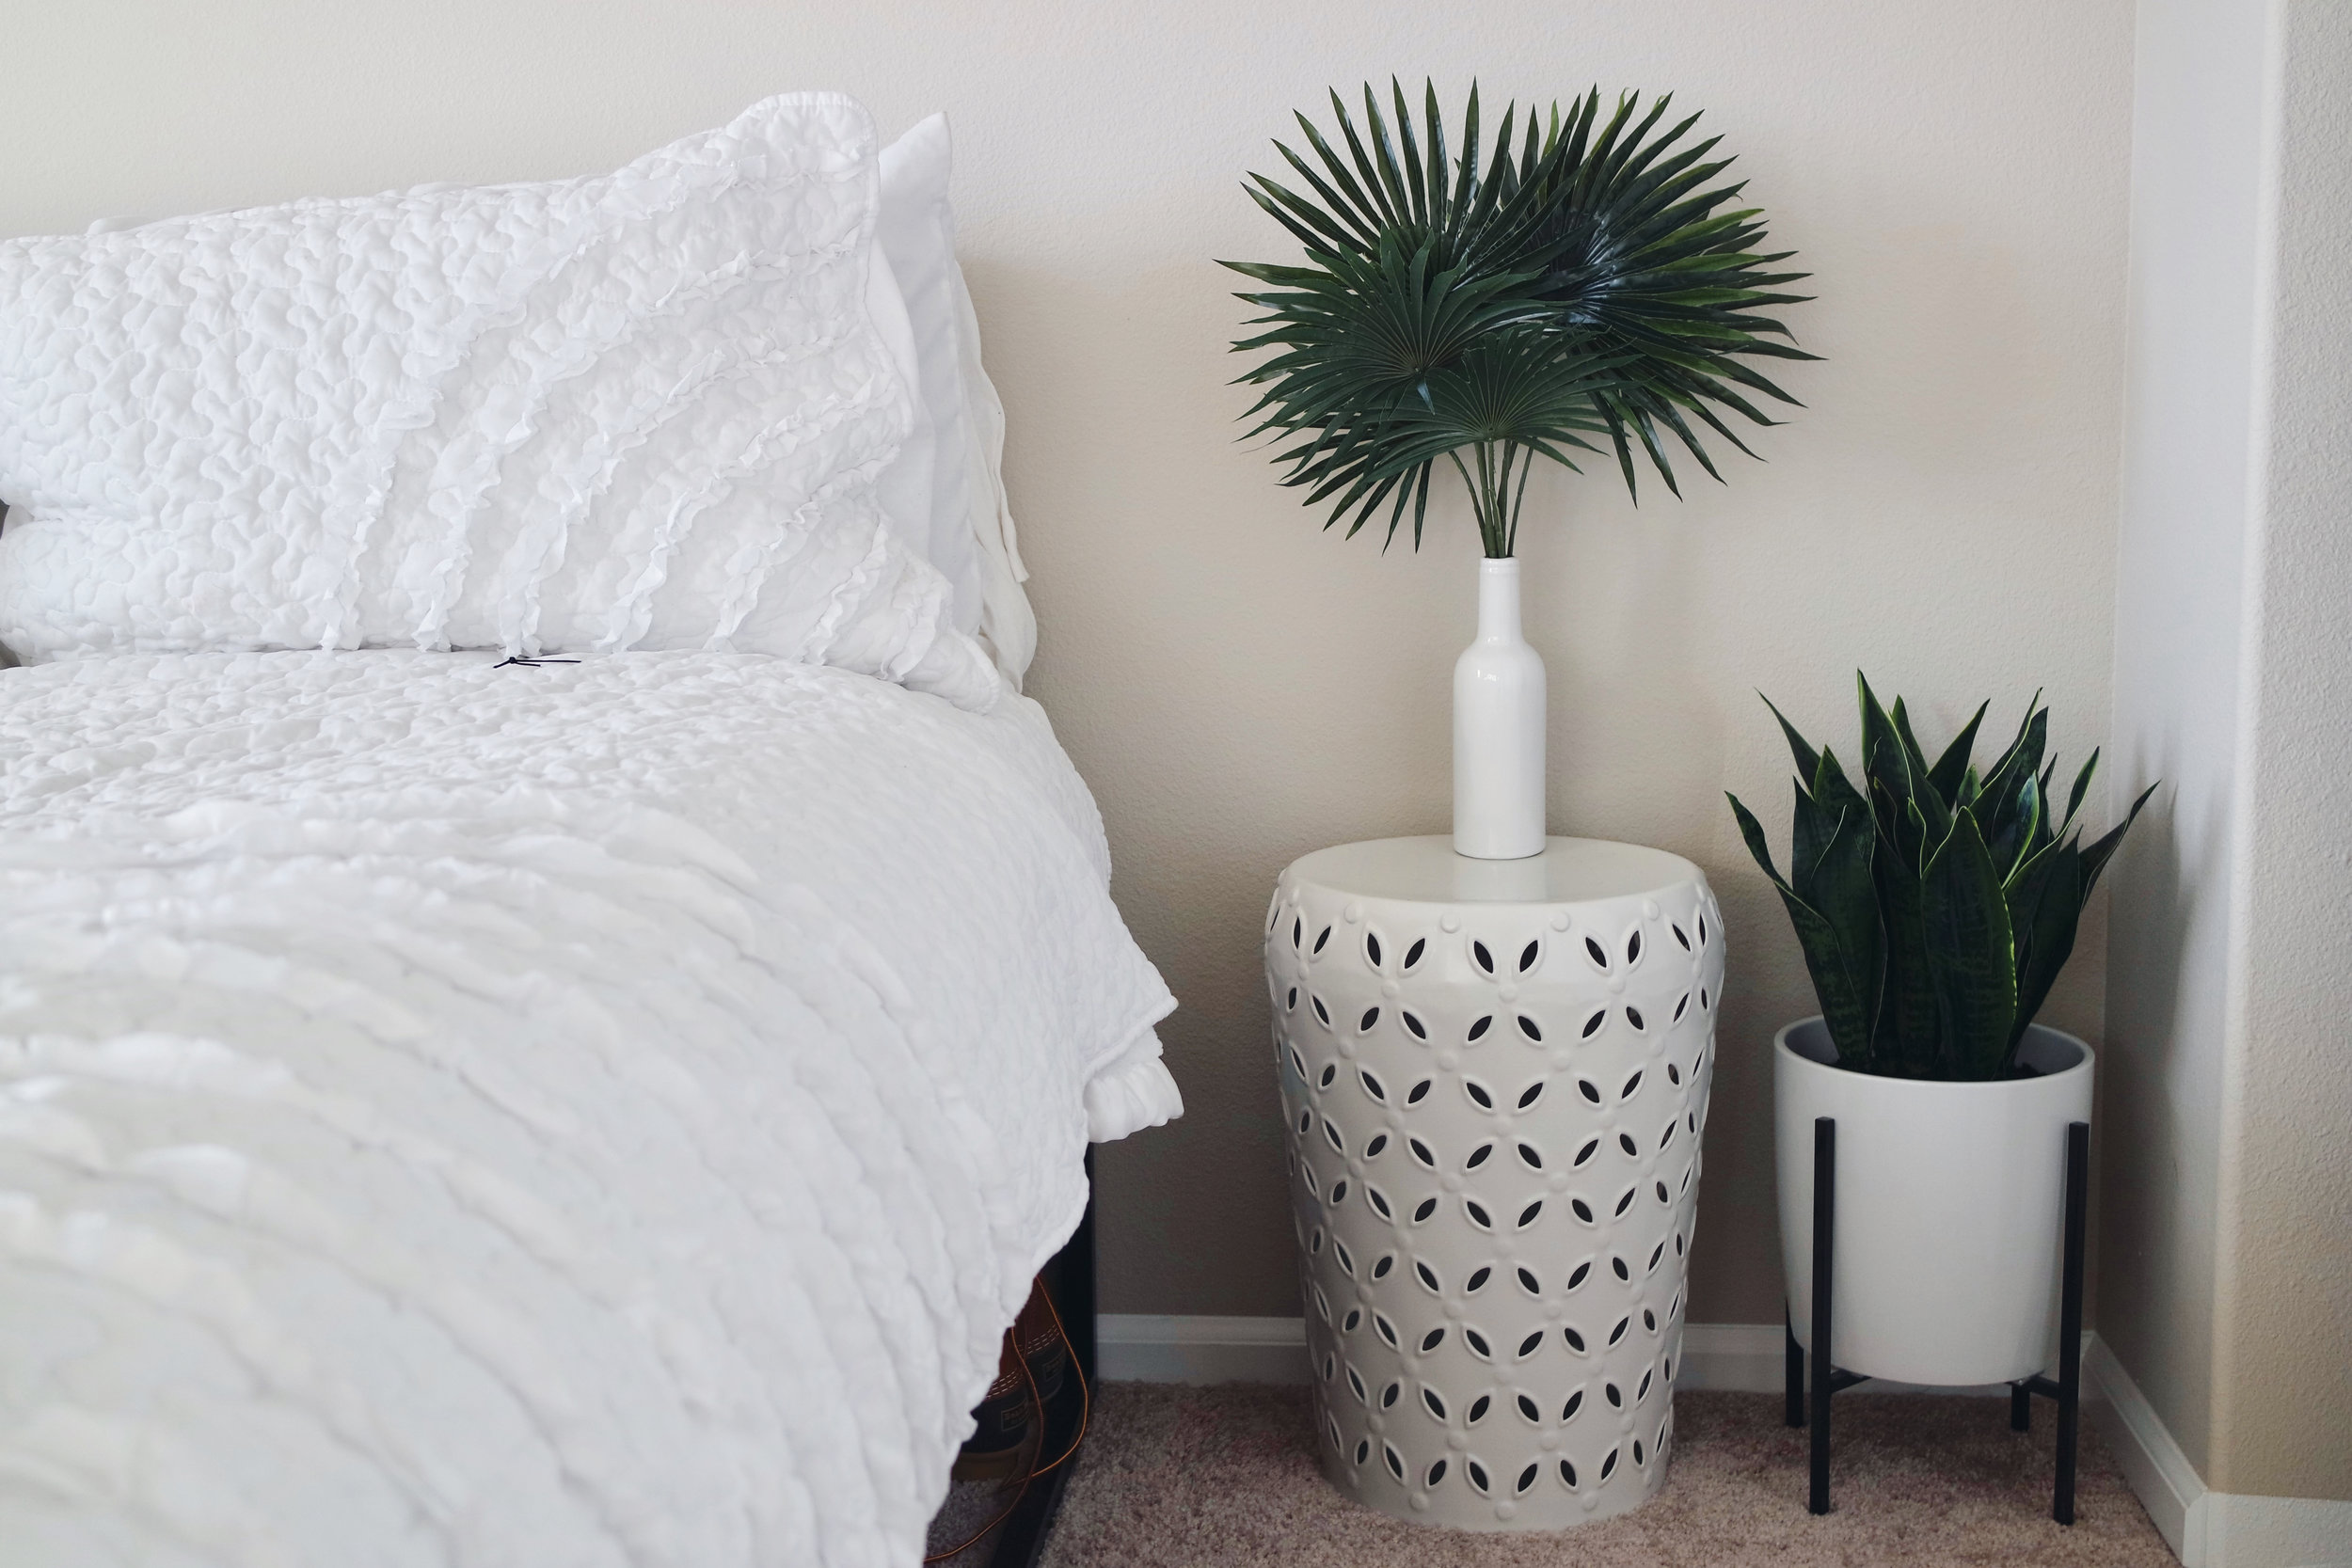 Palm leaves and glass bottle from Michaels. Snake plant & planter from Target.